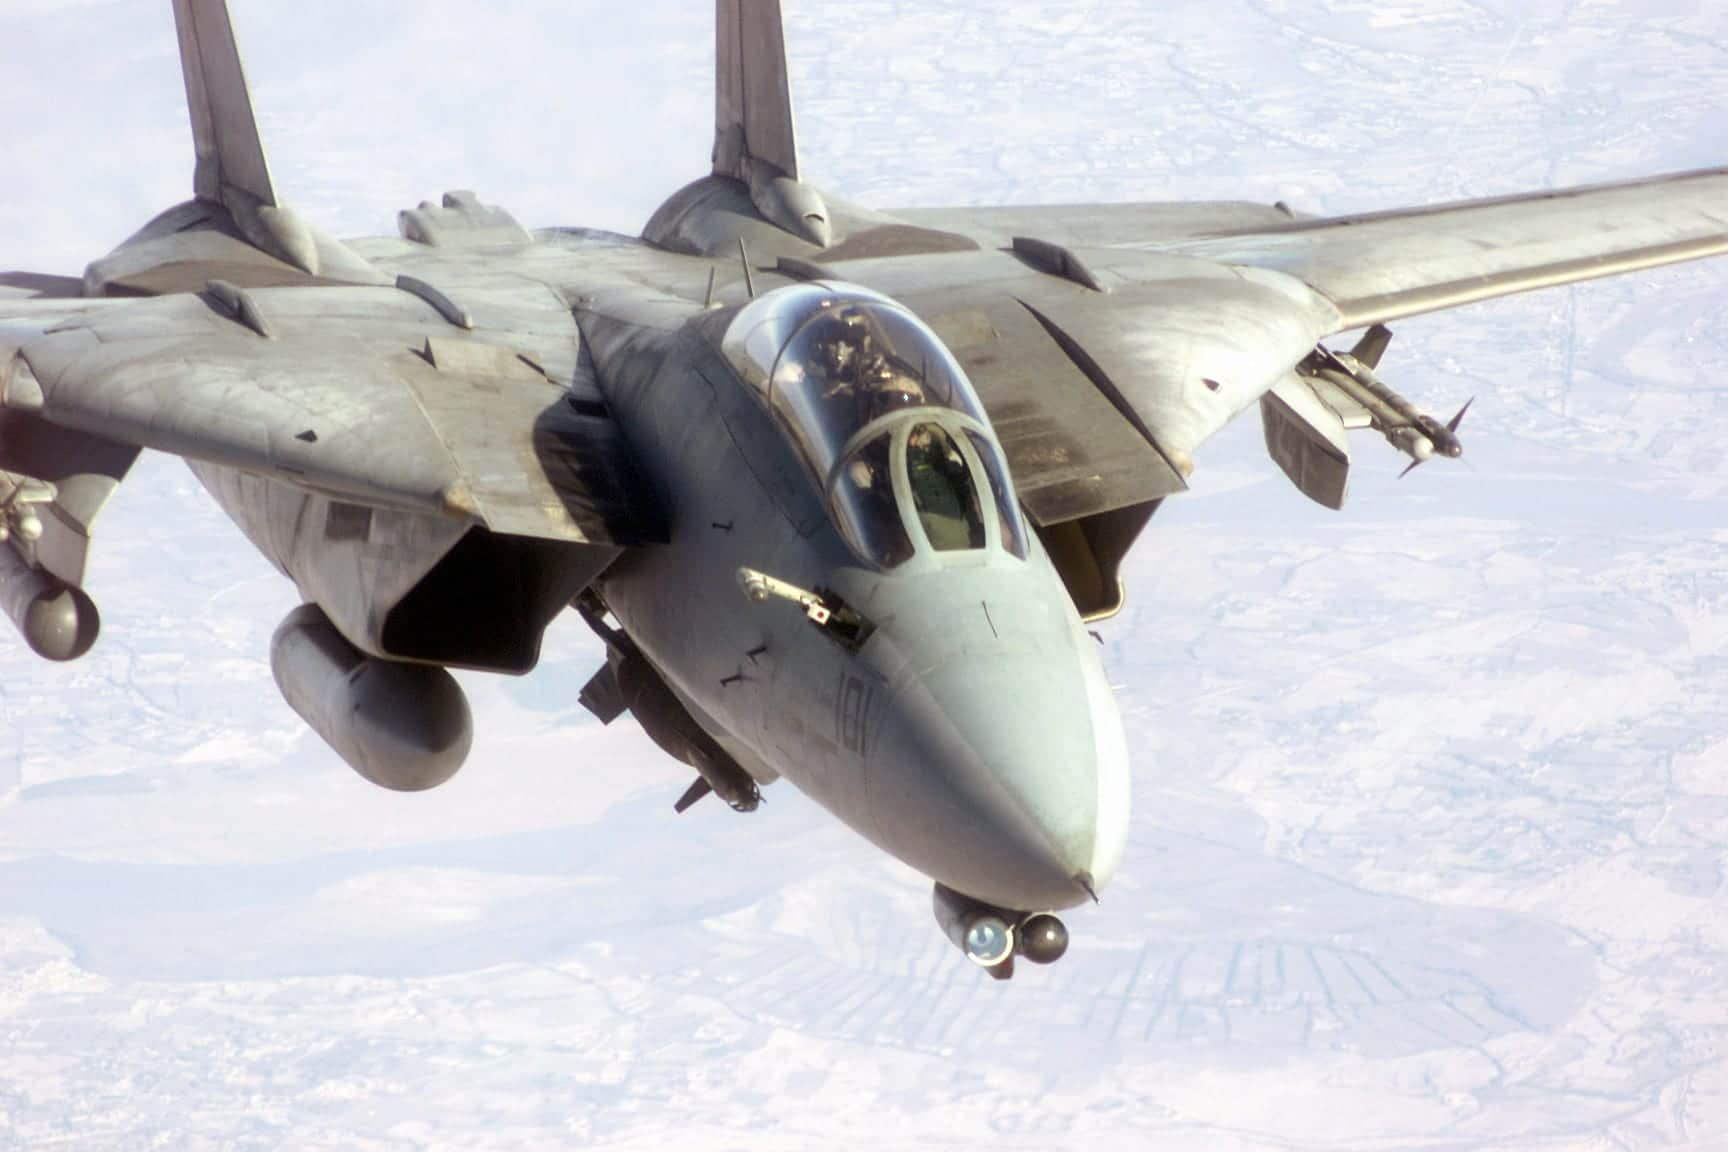 http://www.aereoo.com/wp-content/uploads/2009/01/f-14_tomcat_preparing_to_refuel.jpg